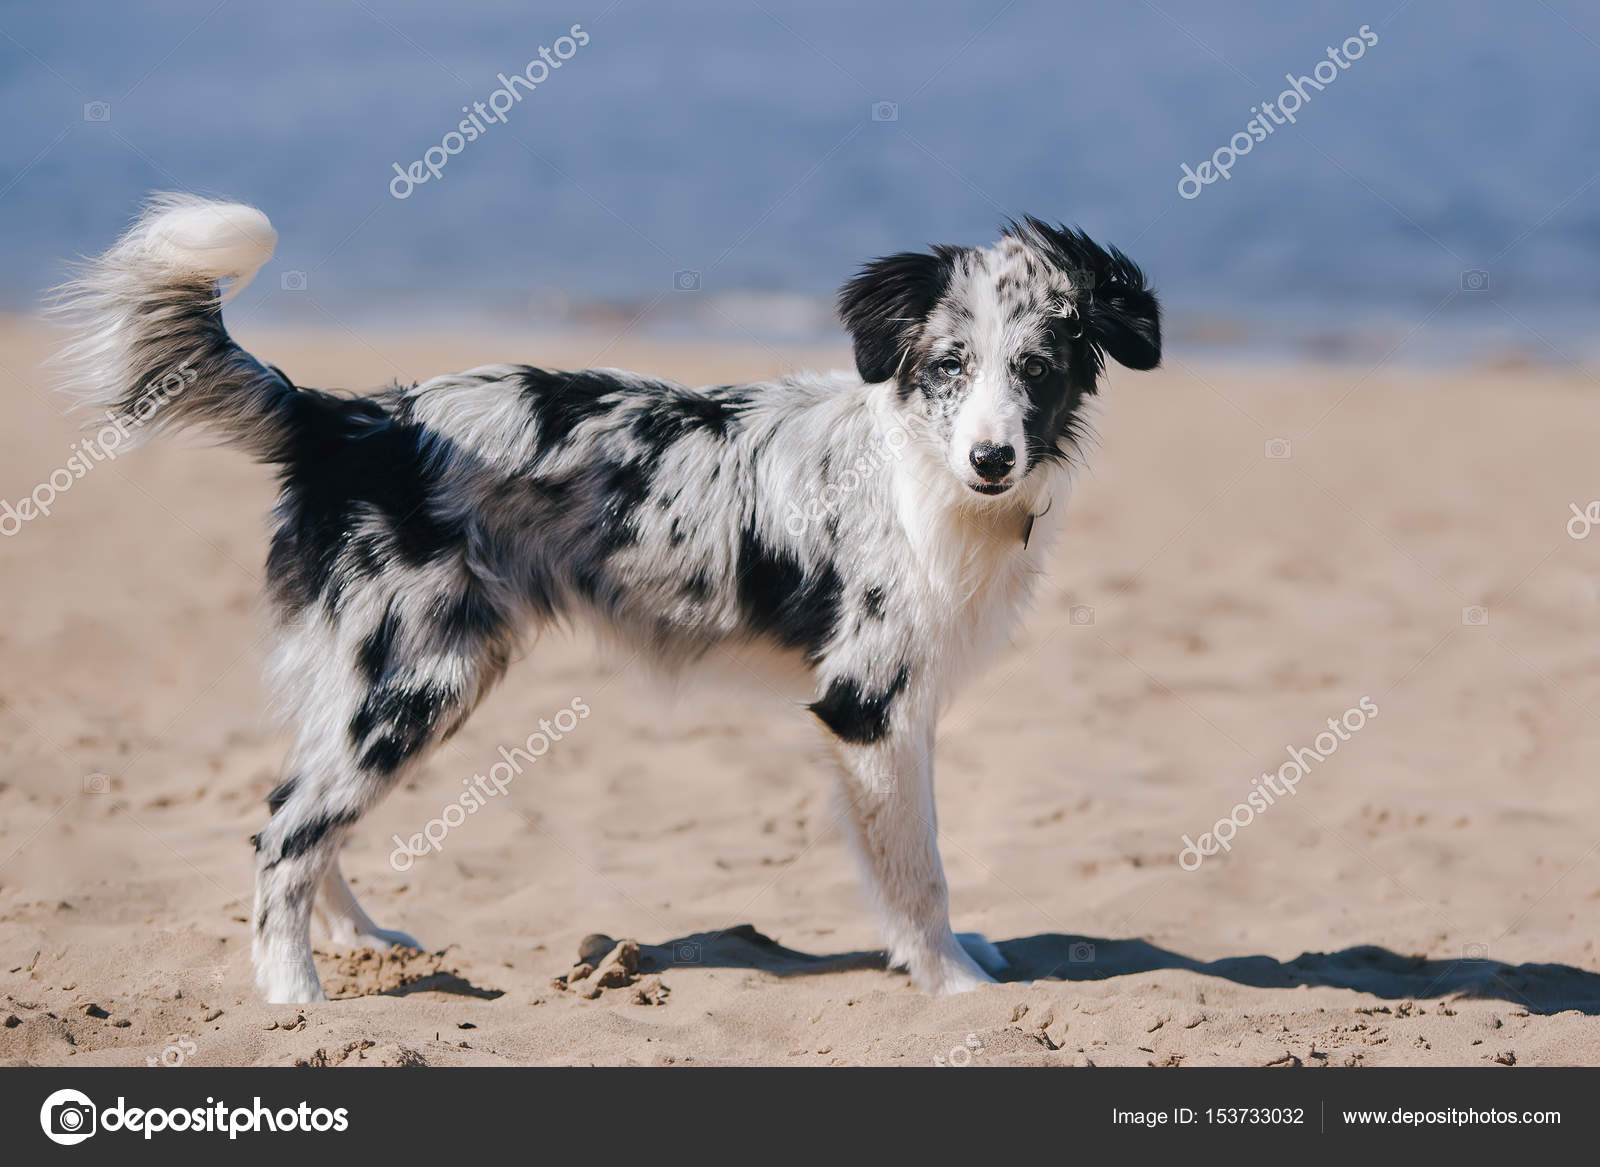 Adorable Cute Blue Merle Border Collie Puppy On The Beach Standing And Looking At The Camera Stock Photo C Bezzznika 153733032